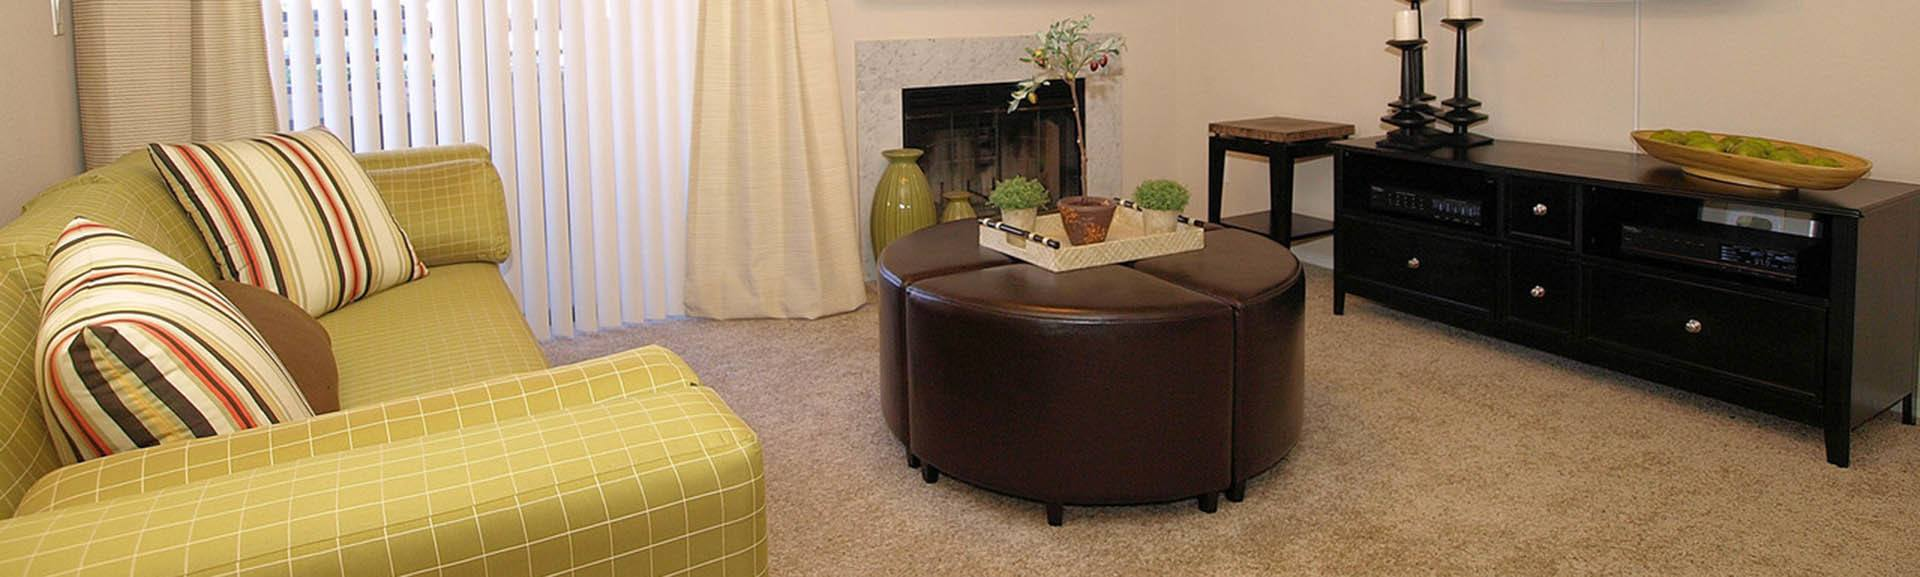 View our floor plans at Reserve at Capital Center Apartment Homes on our website